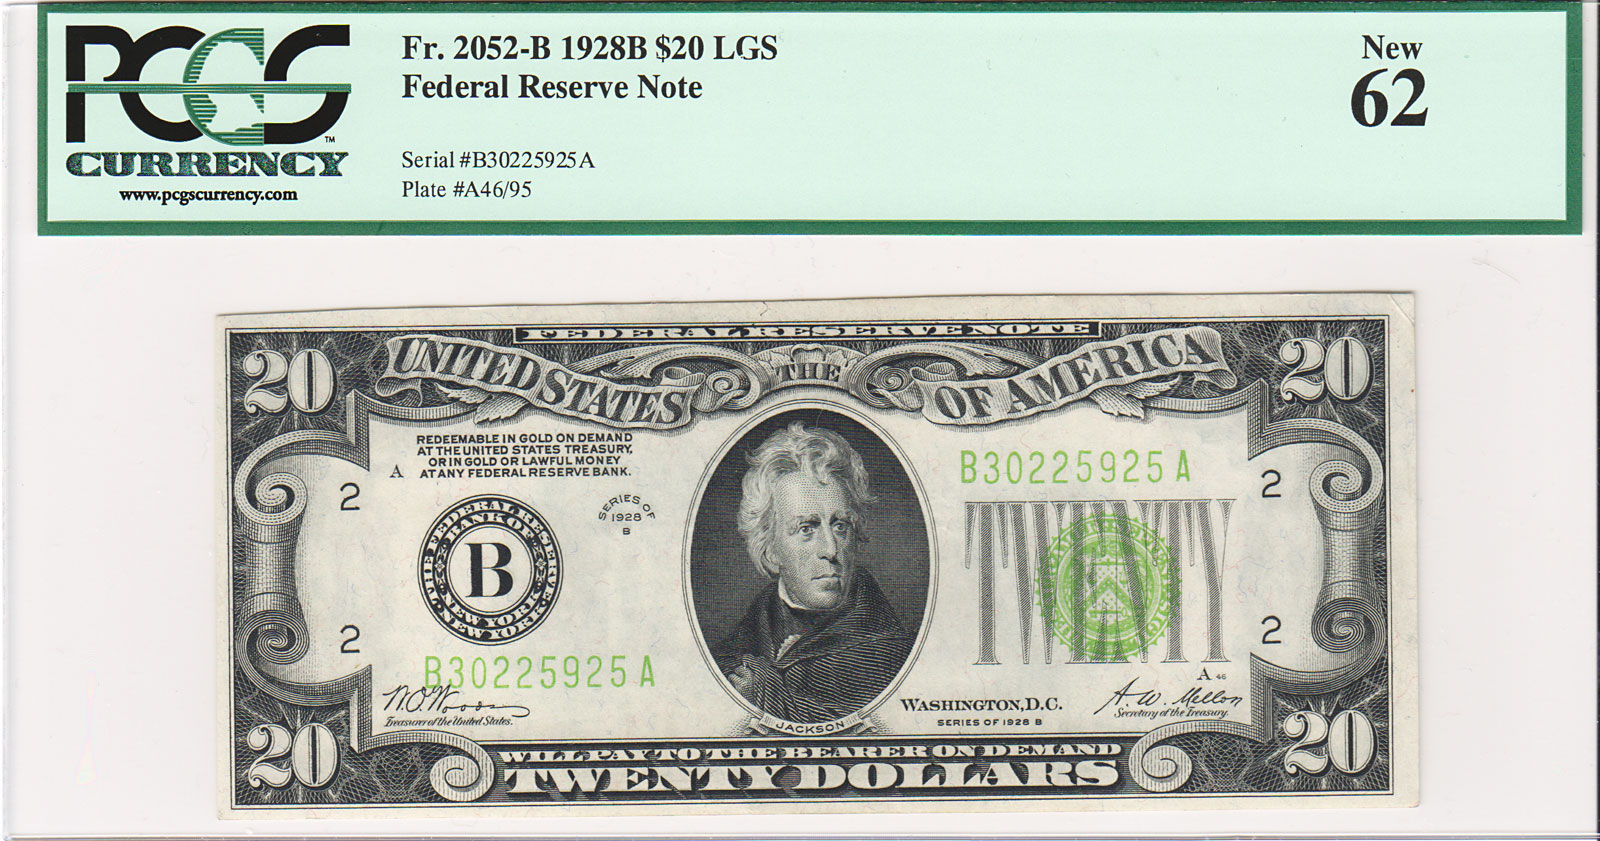 1977 100 dollar bill security features - Pcgs New 62